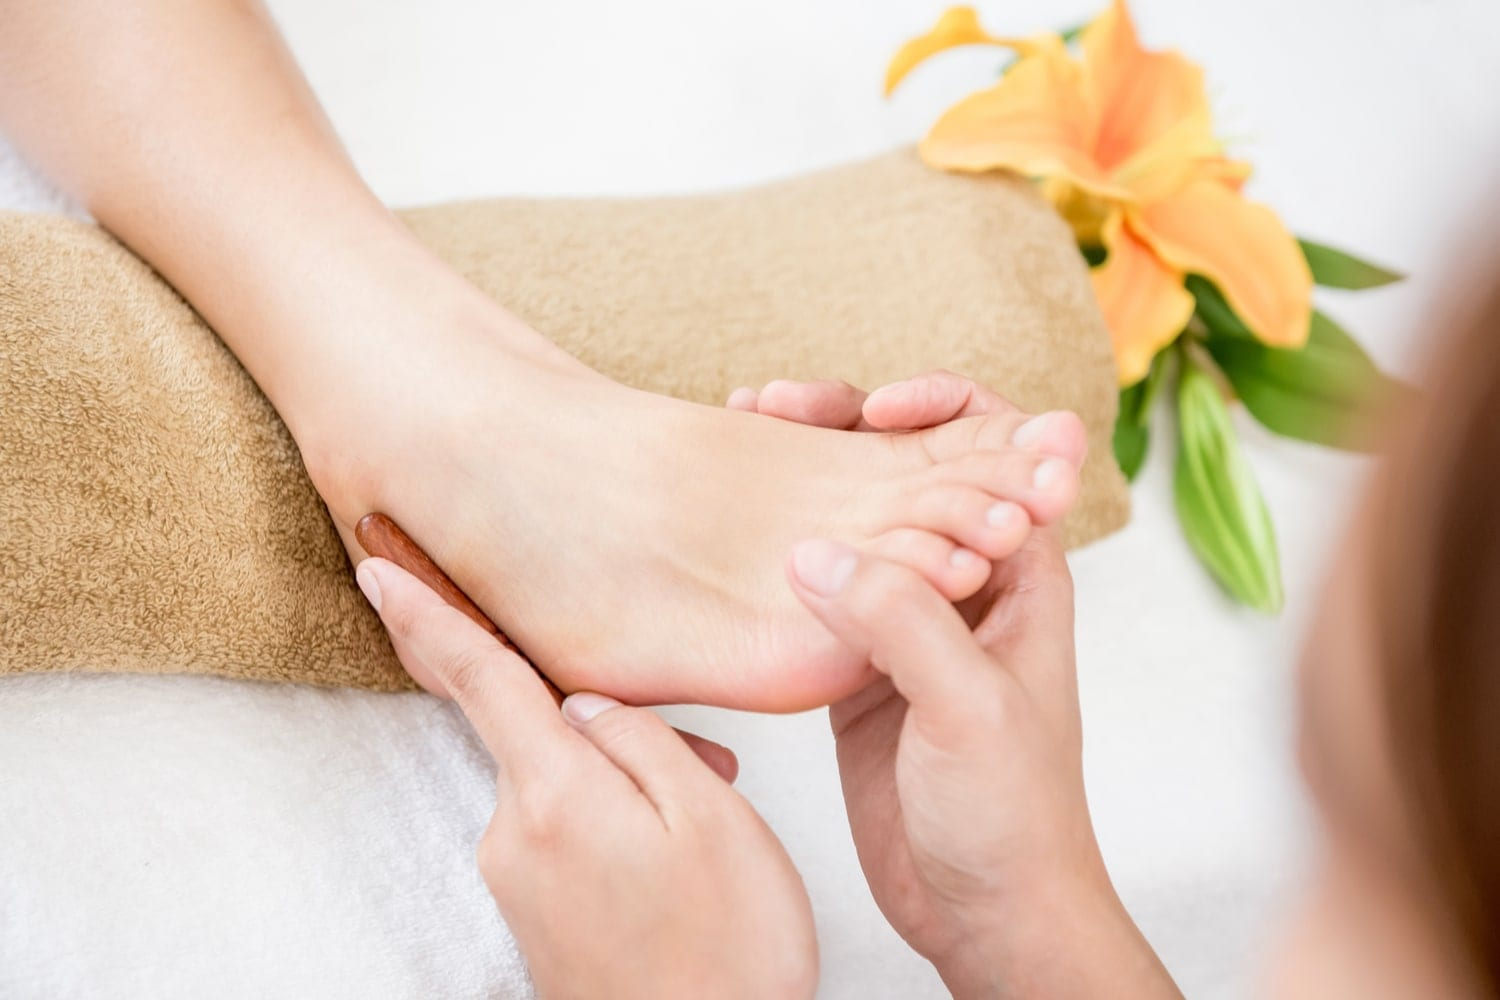 Woman receiving alternative therapy massage